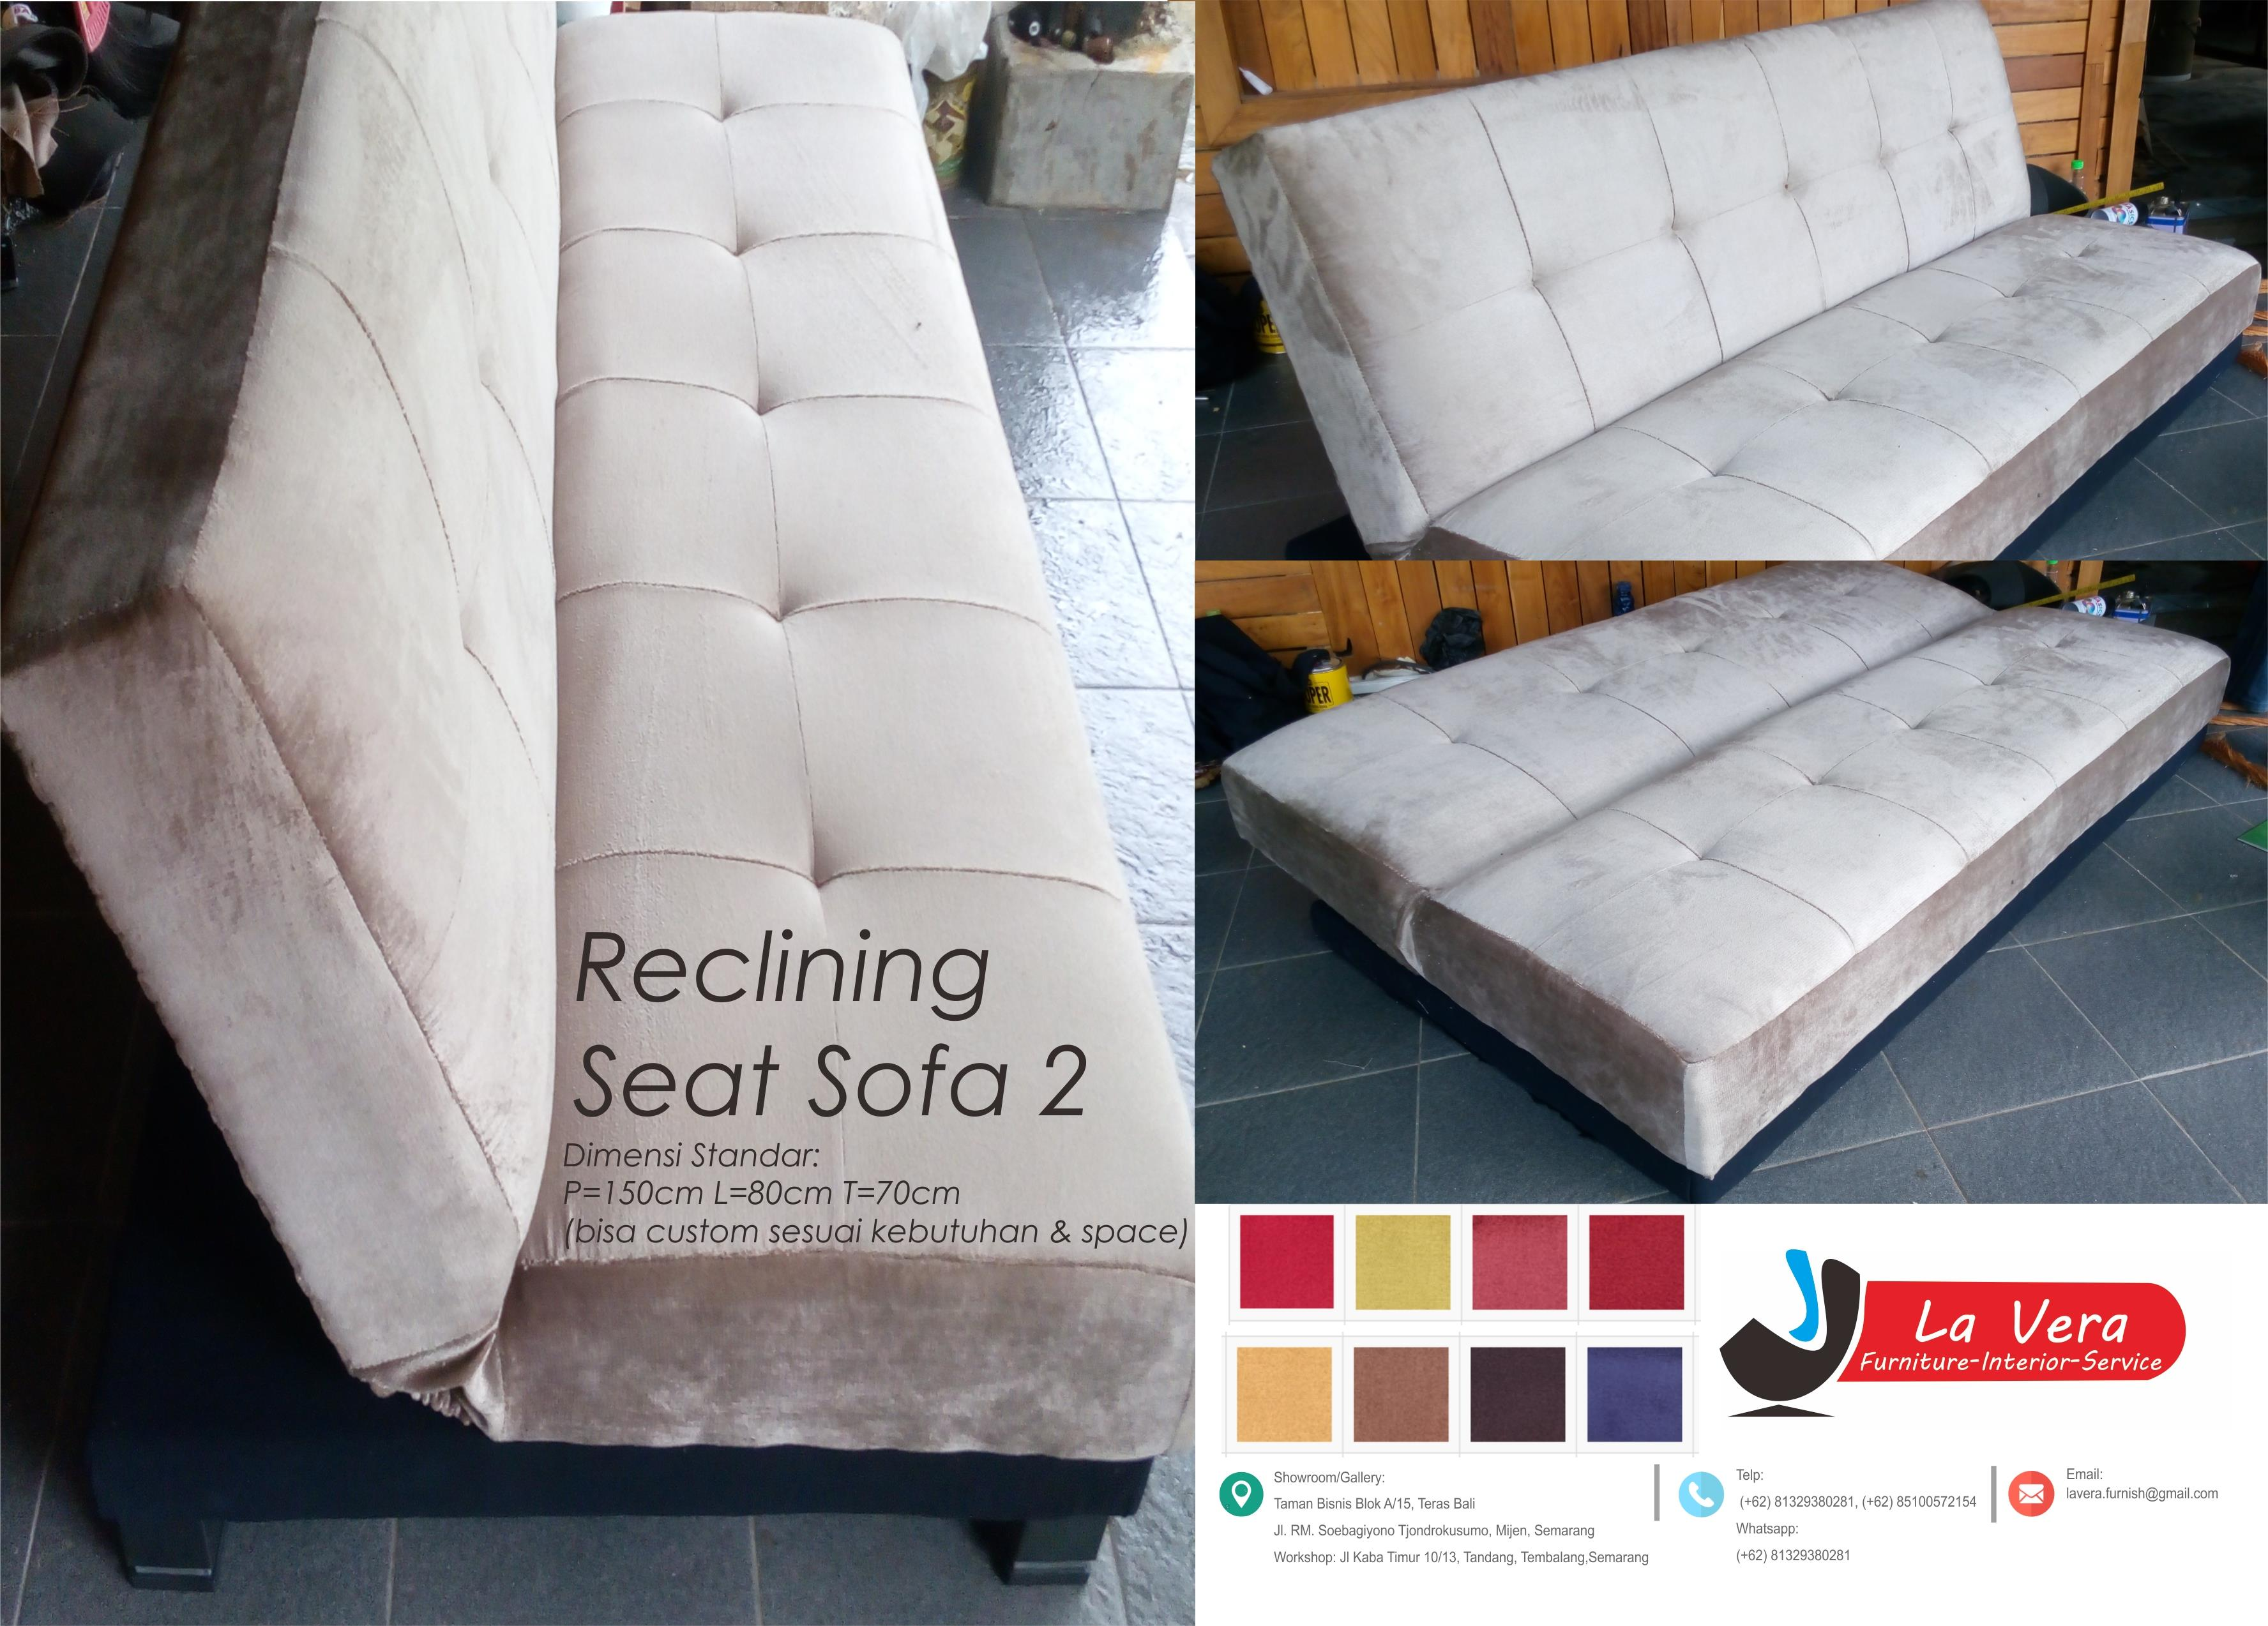 Sell sofa bed minimalis 2 from indonesia by cv laveracheap price